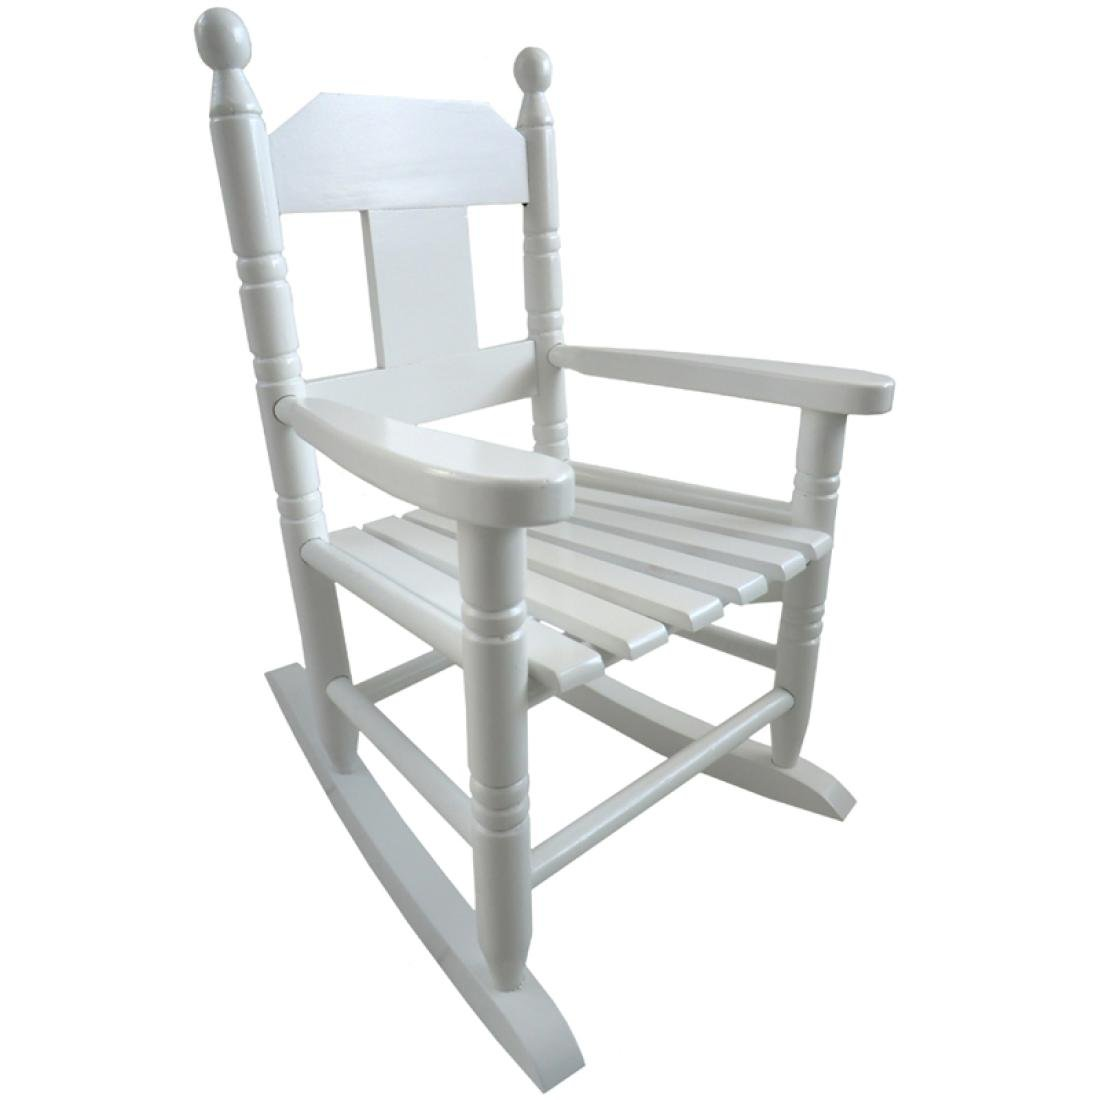 White childs rocking chair childrens rocking chair kids for White kids chair